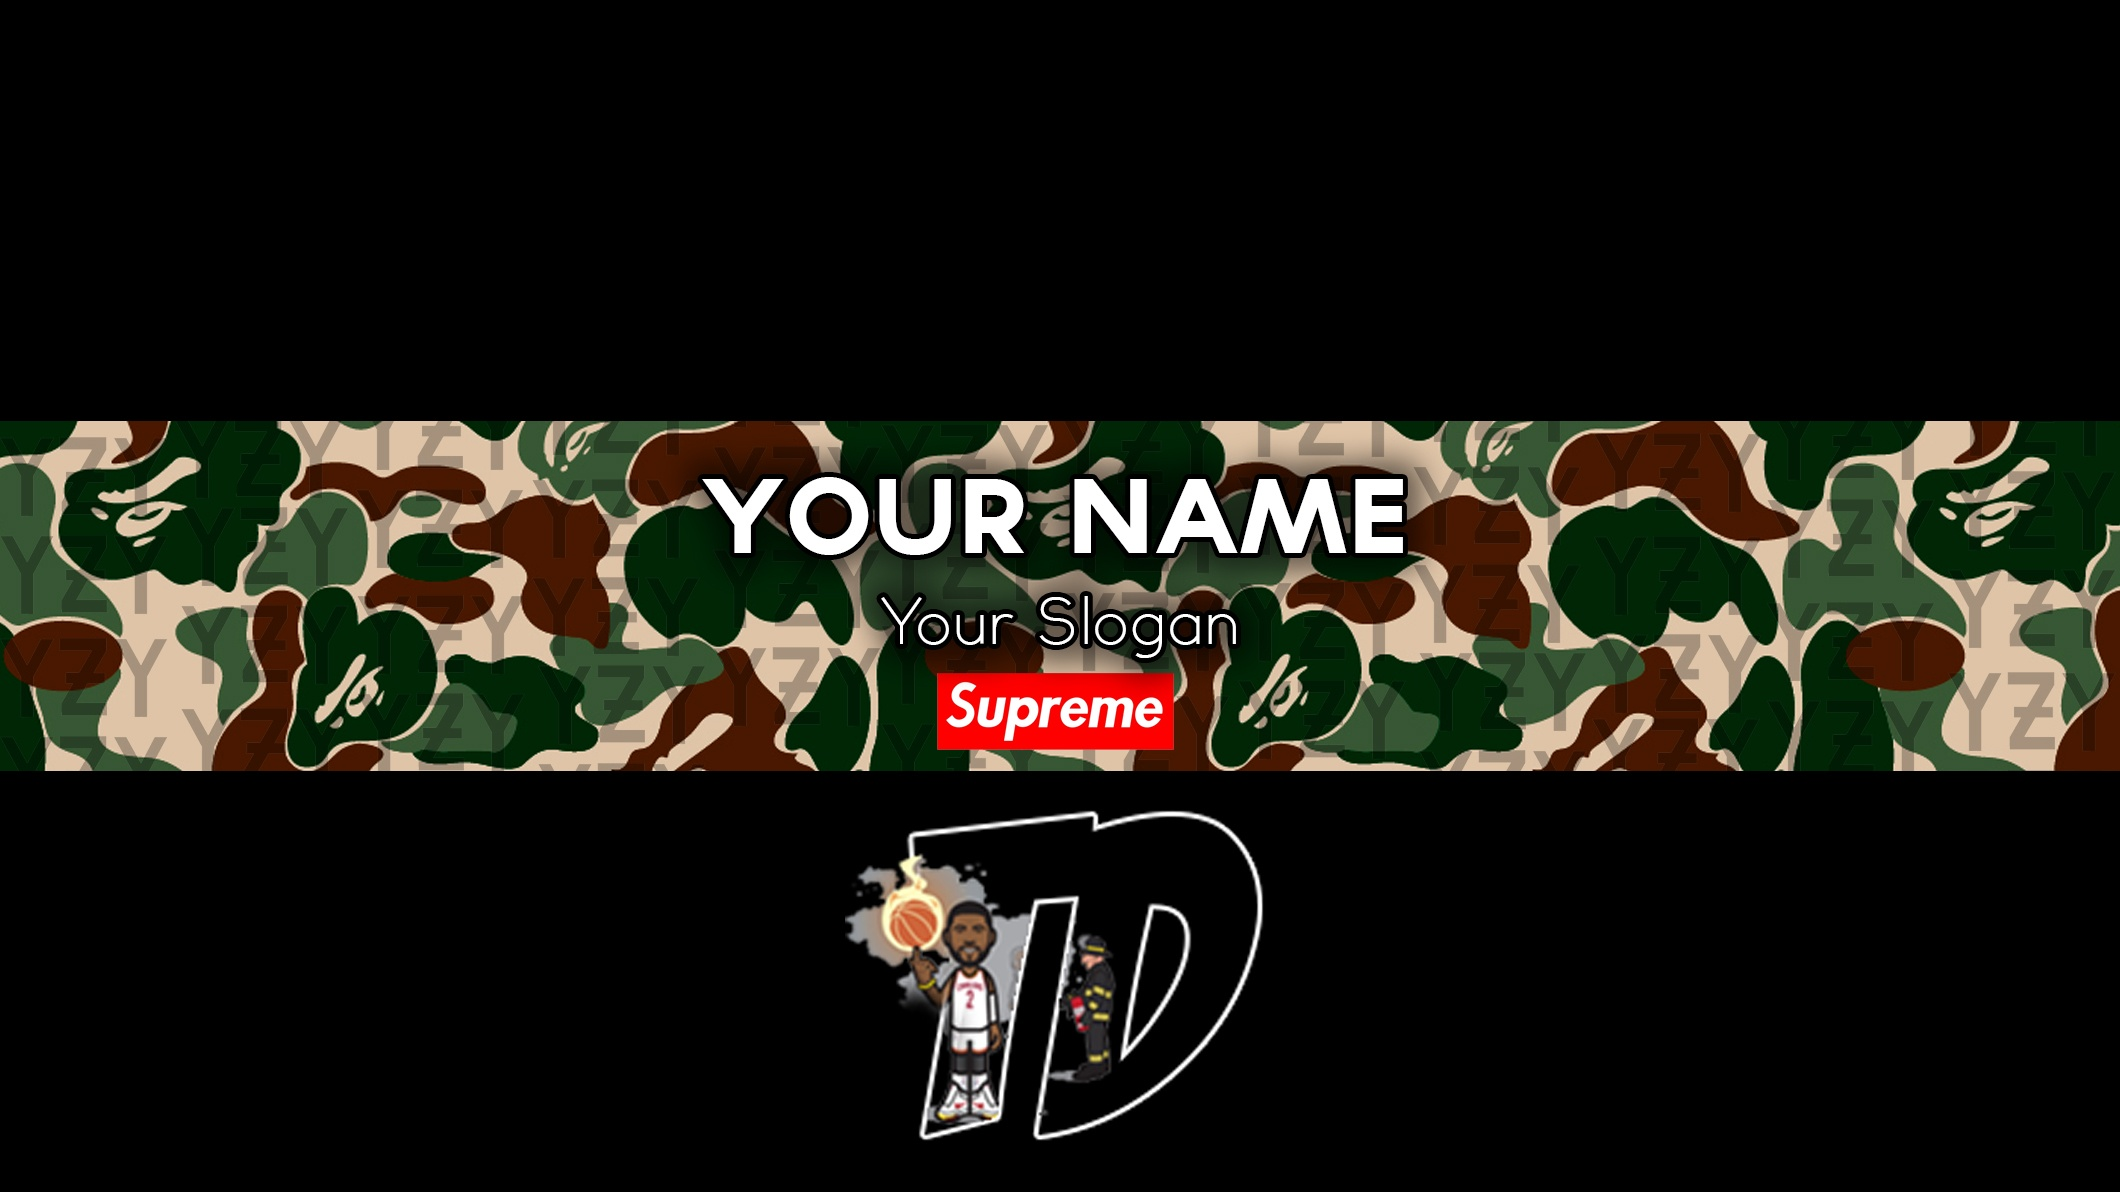 Wallpapers Iphone 7 Hypebeast Banner Sneaker Banner With Bape Logo And S